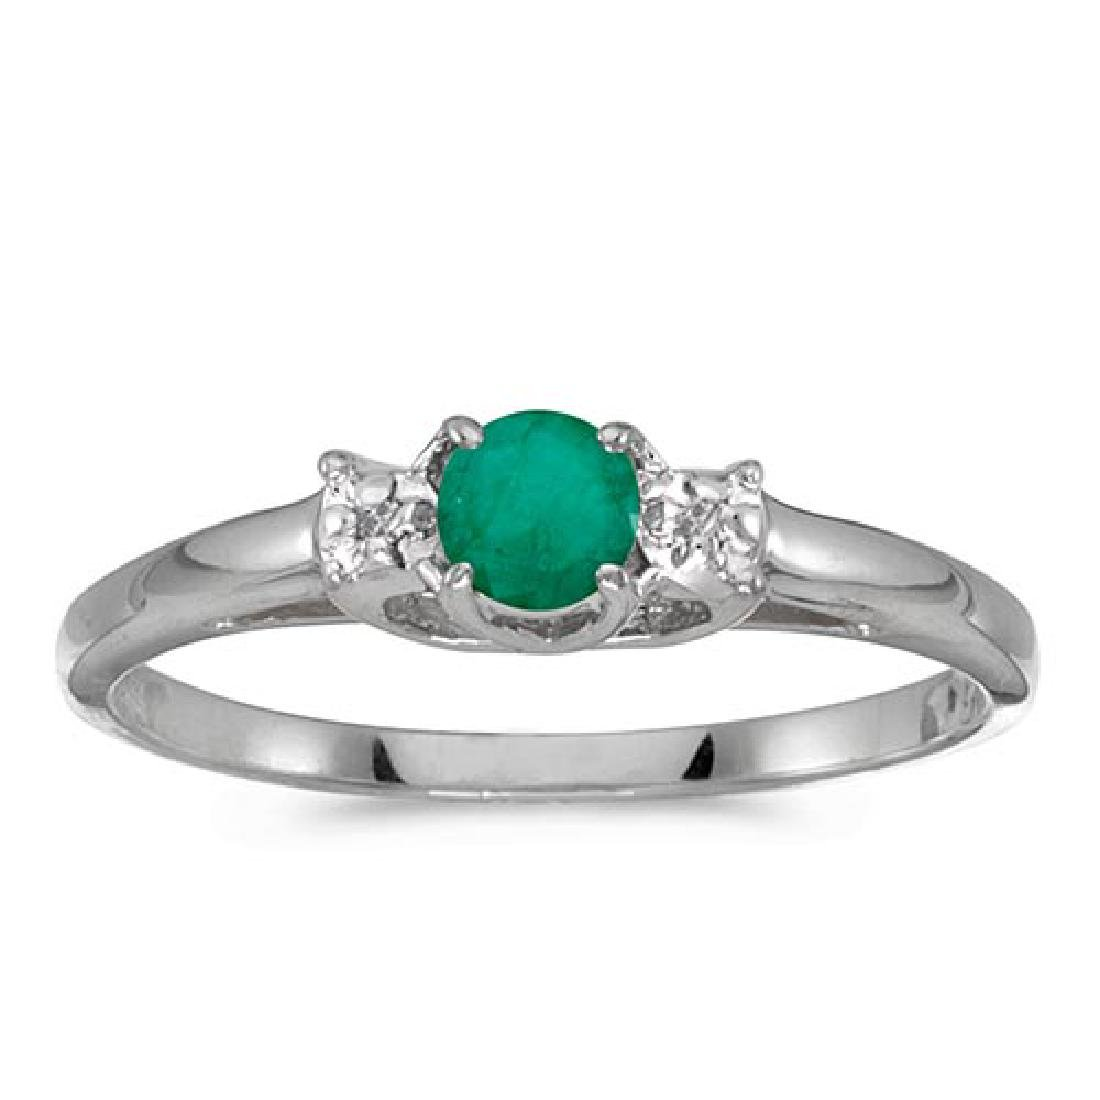 Certified 14k White Gold Round Emerald And Diamond Ring